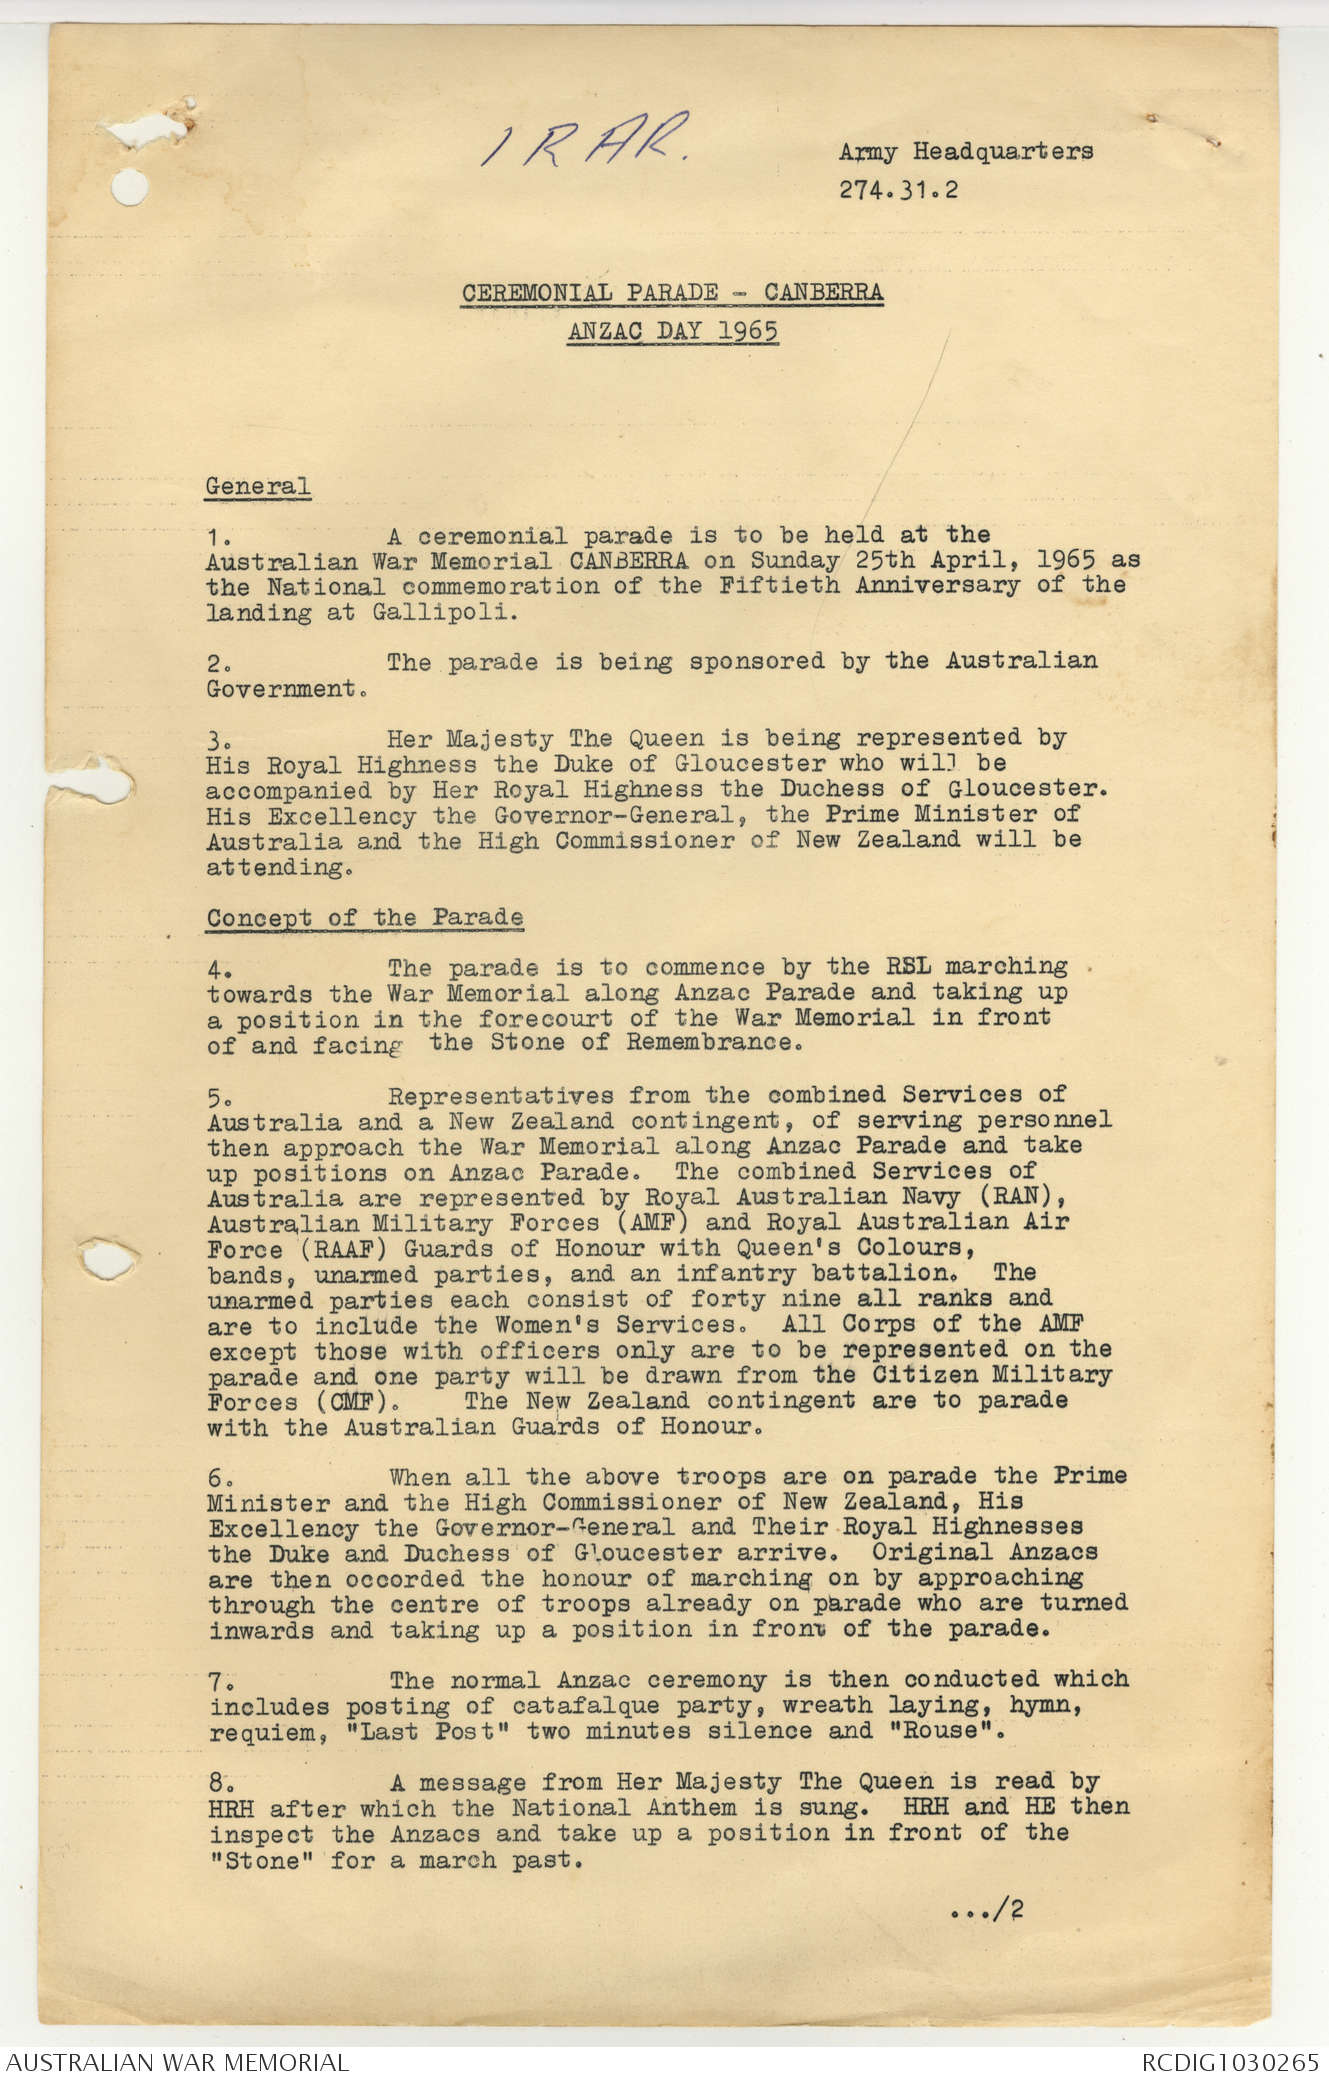 AWM95 7/1/25 - 1-31 March 1965, Additional Annex material